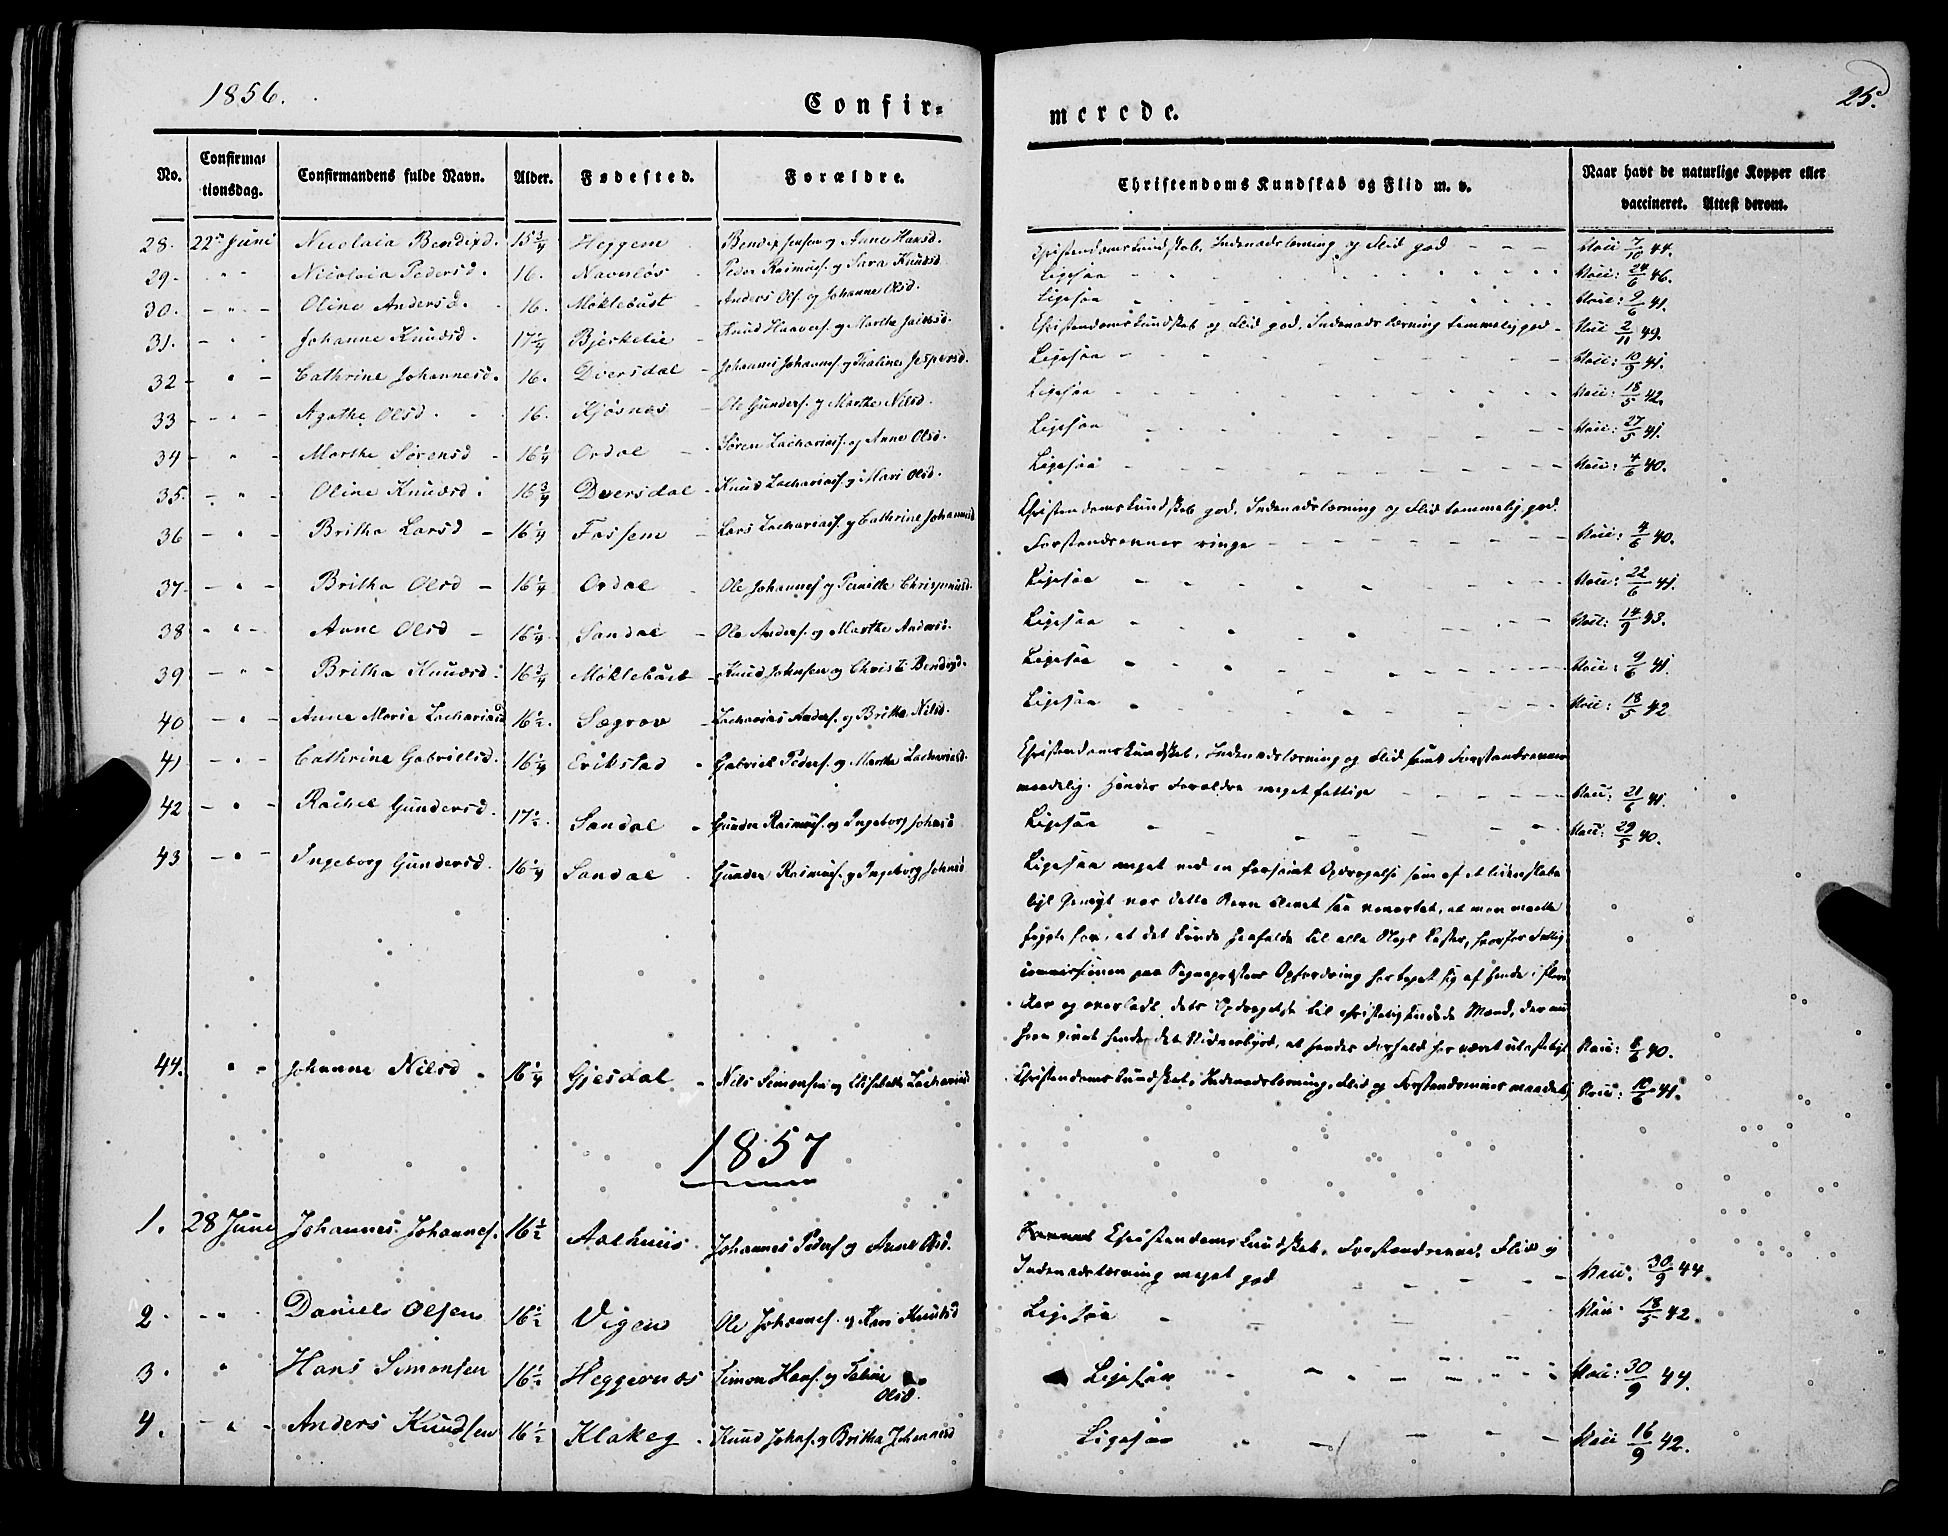 SAB, Jølster sokneprestembete, H/Haa/Haaa/L0010: Parish register (official) no. A 10, 1847-1865, p. 25